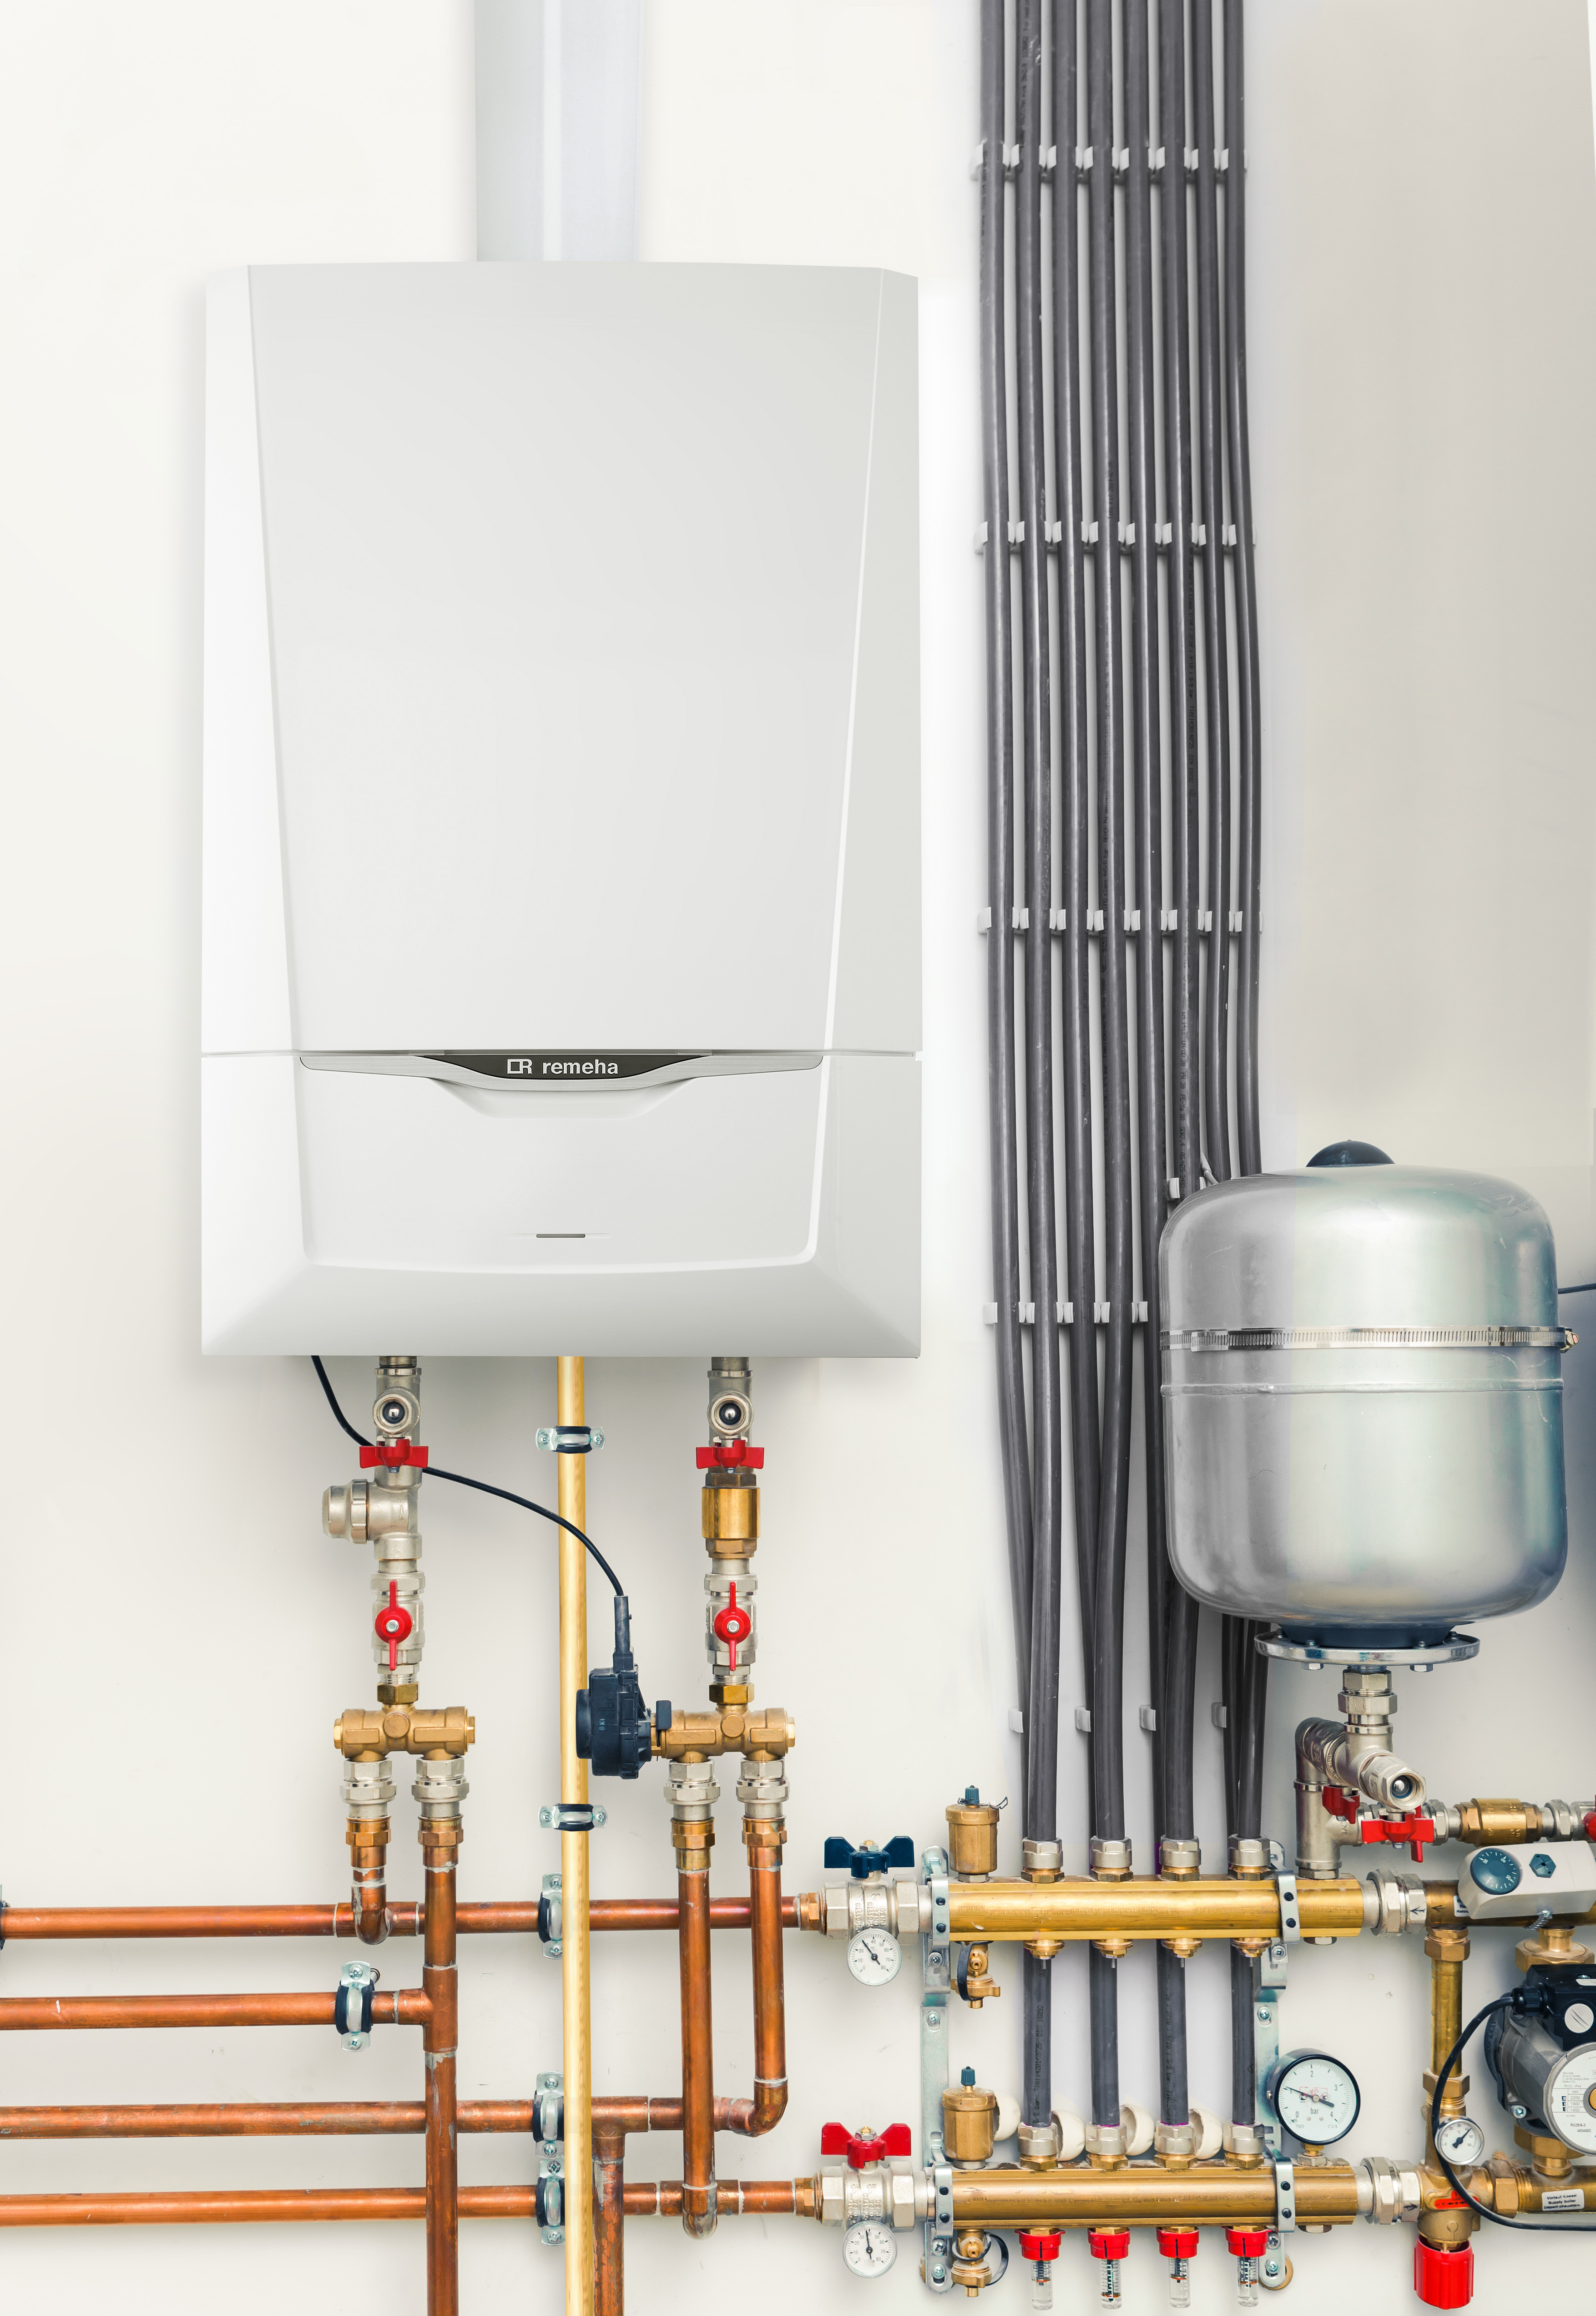 independent heating system with boiler